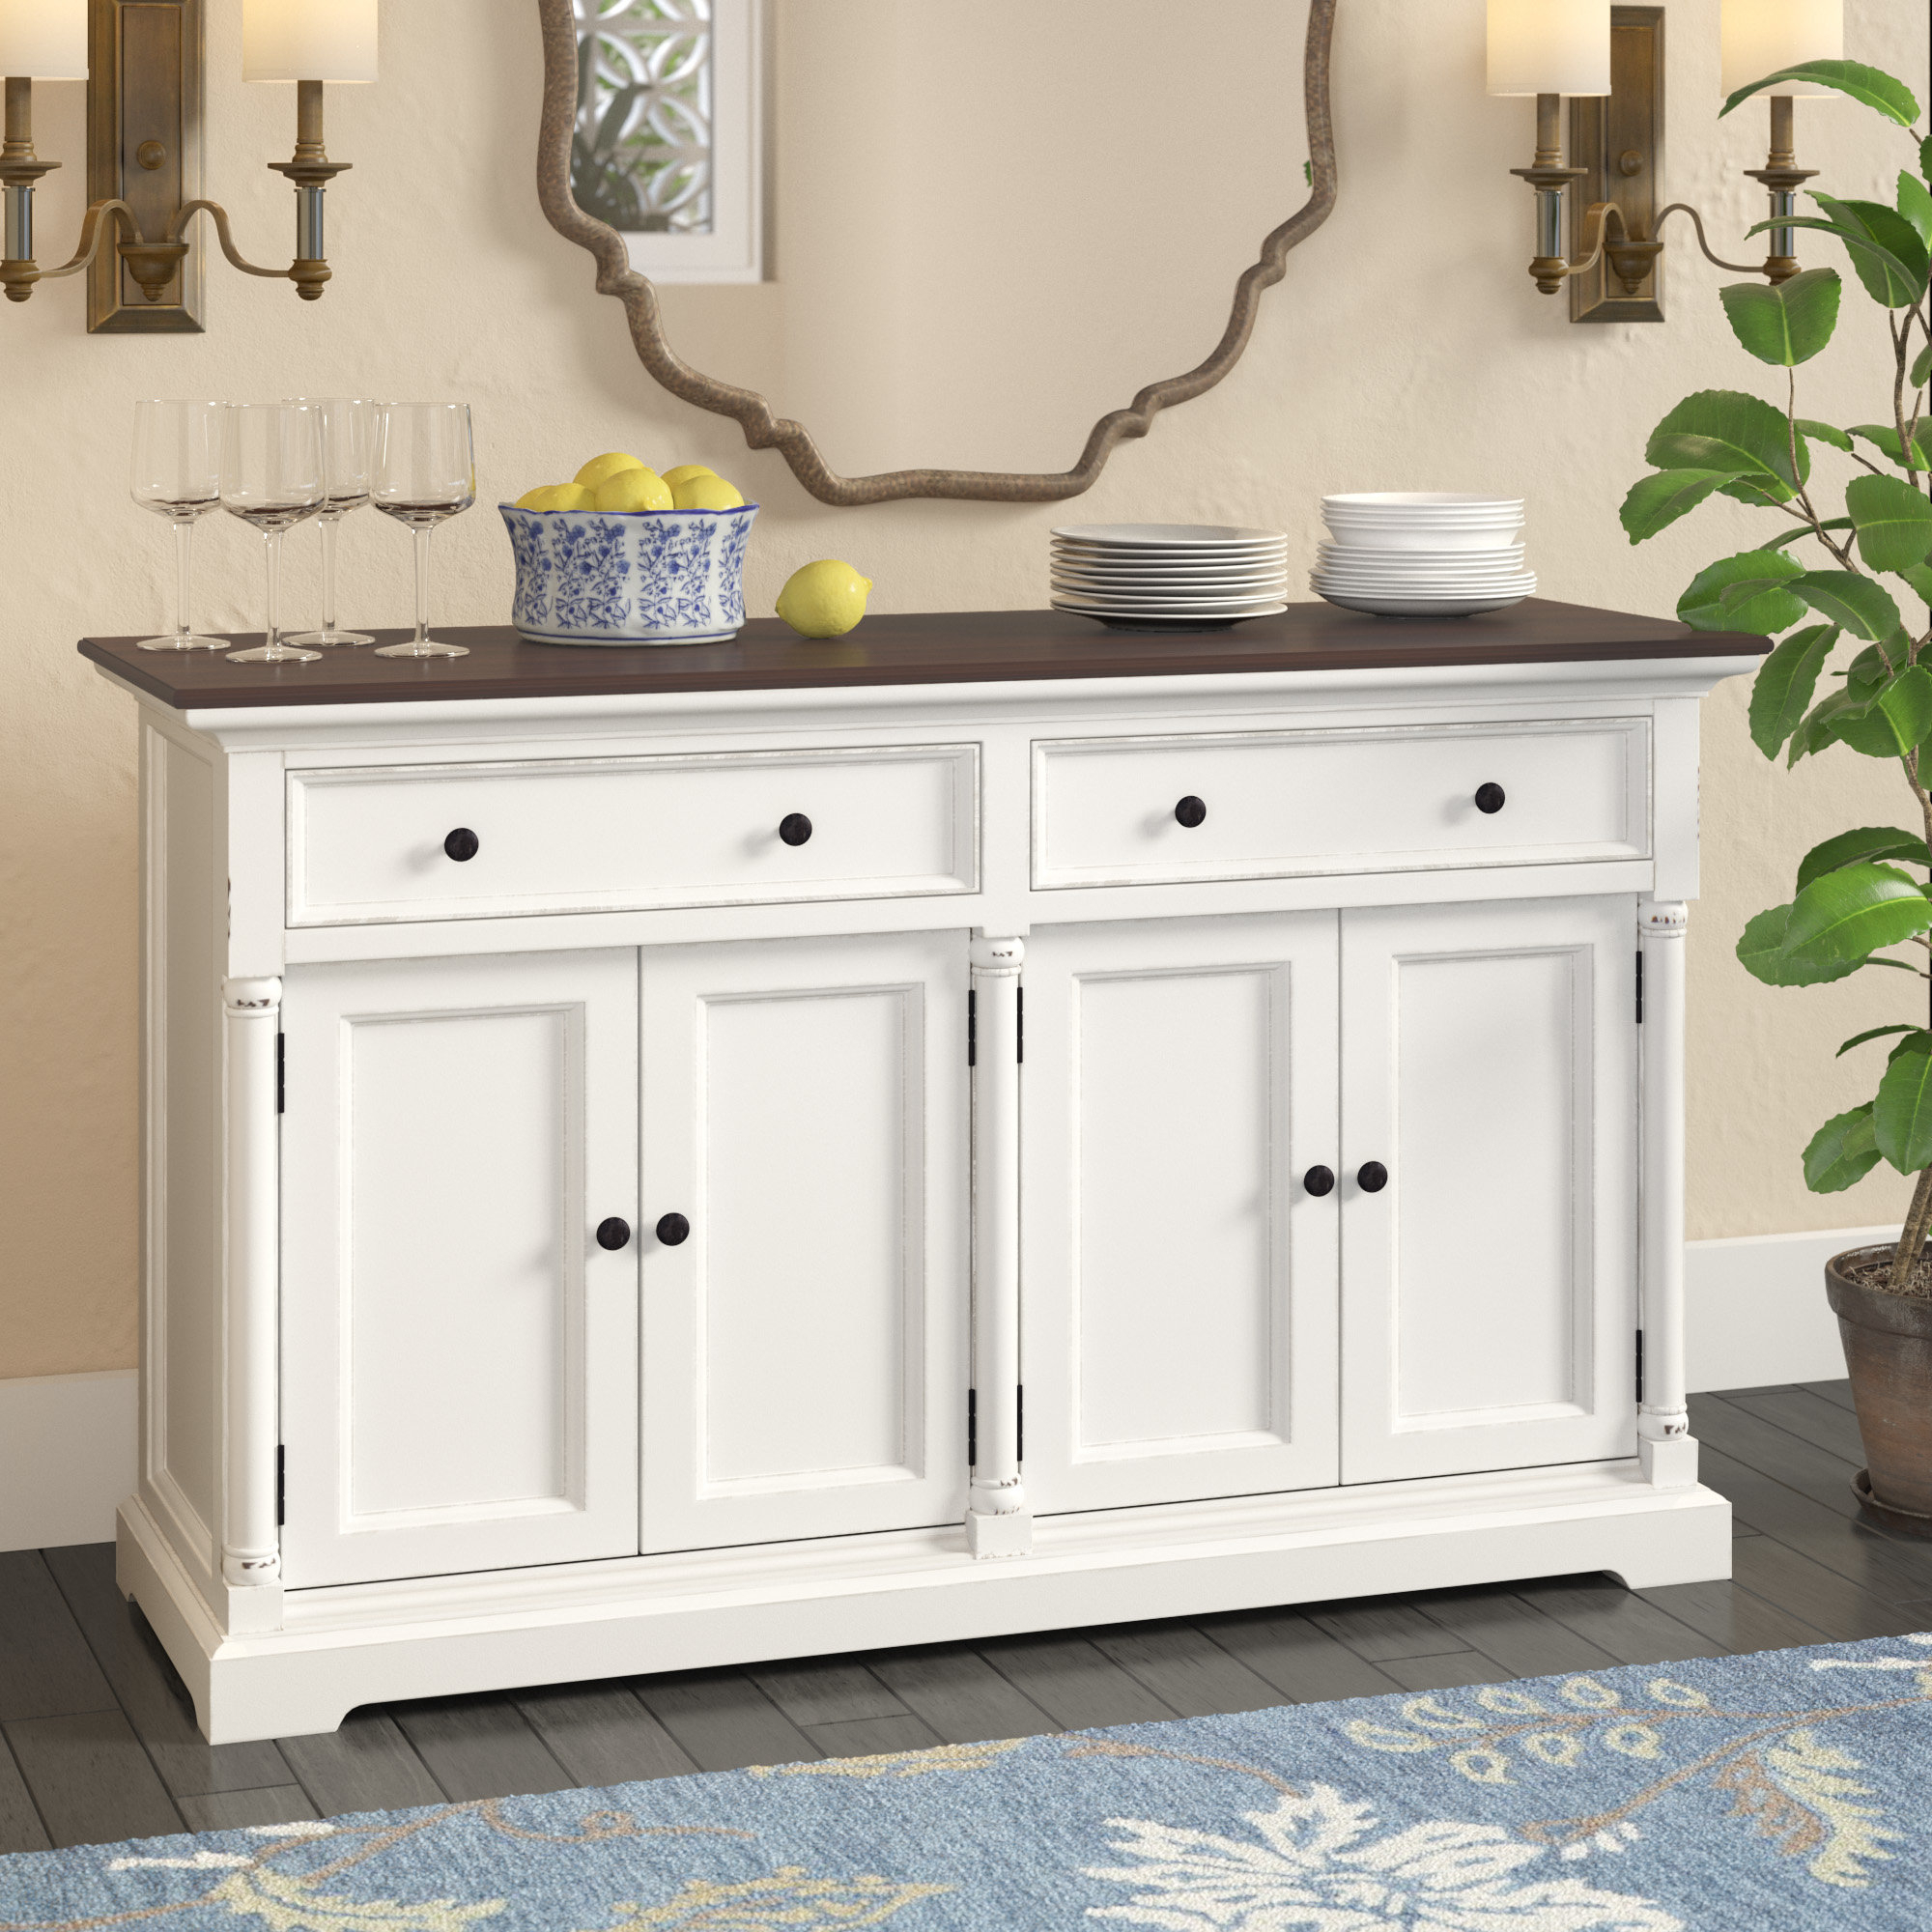 Farmhouse & Rustic Darby Home Co Sideboards & Buffets Pertaining To Tilman Sideboards (View 18 of 20)